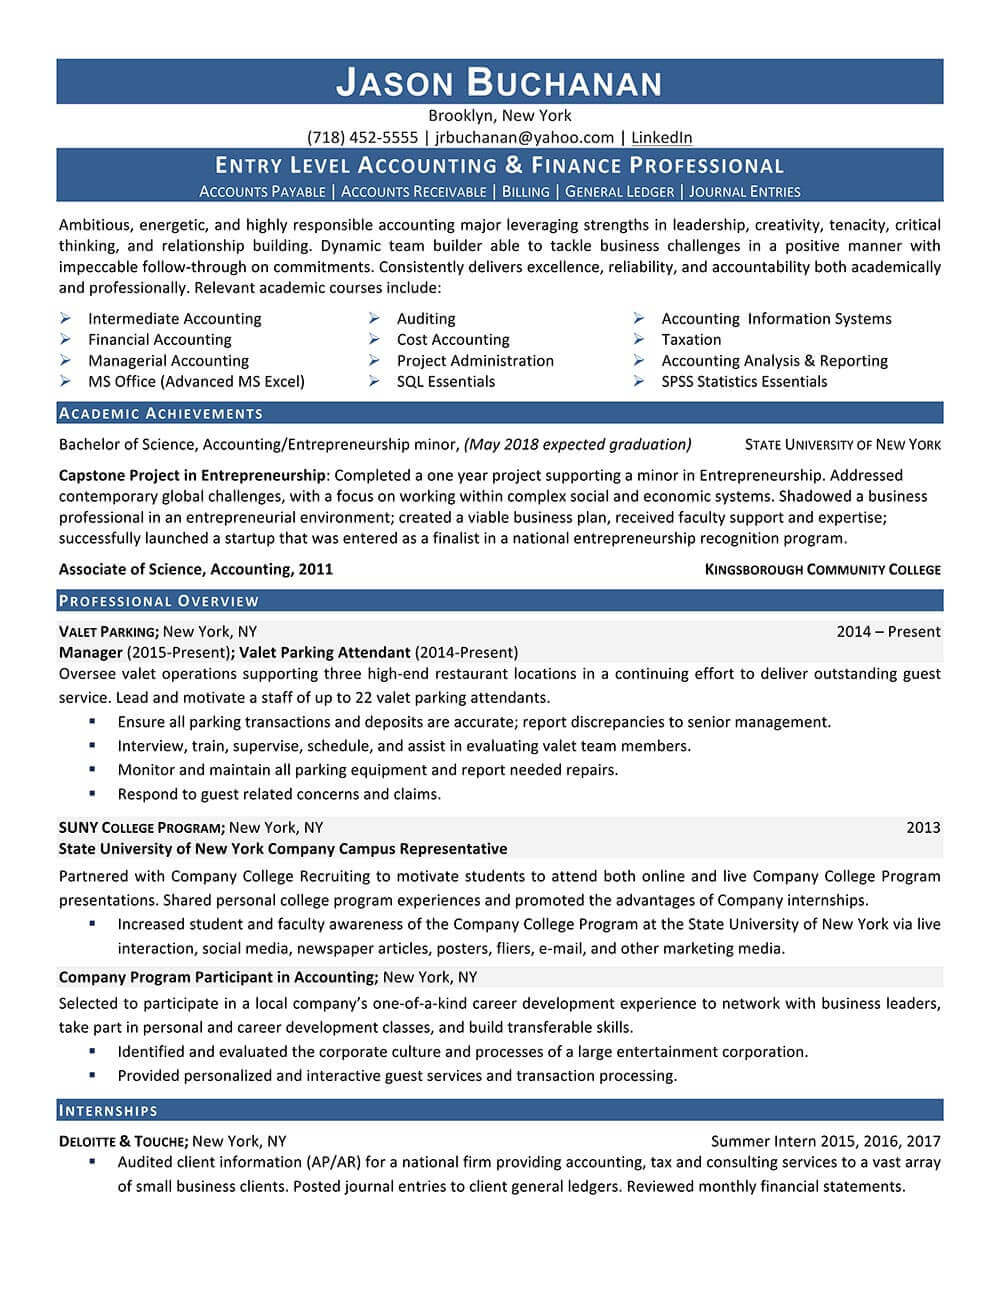 professional resume writing services monster writers linkedin after the most impressive Resume Professional Resume Writers Linkedin